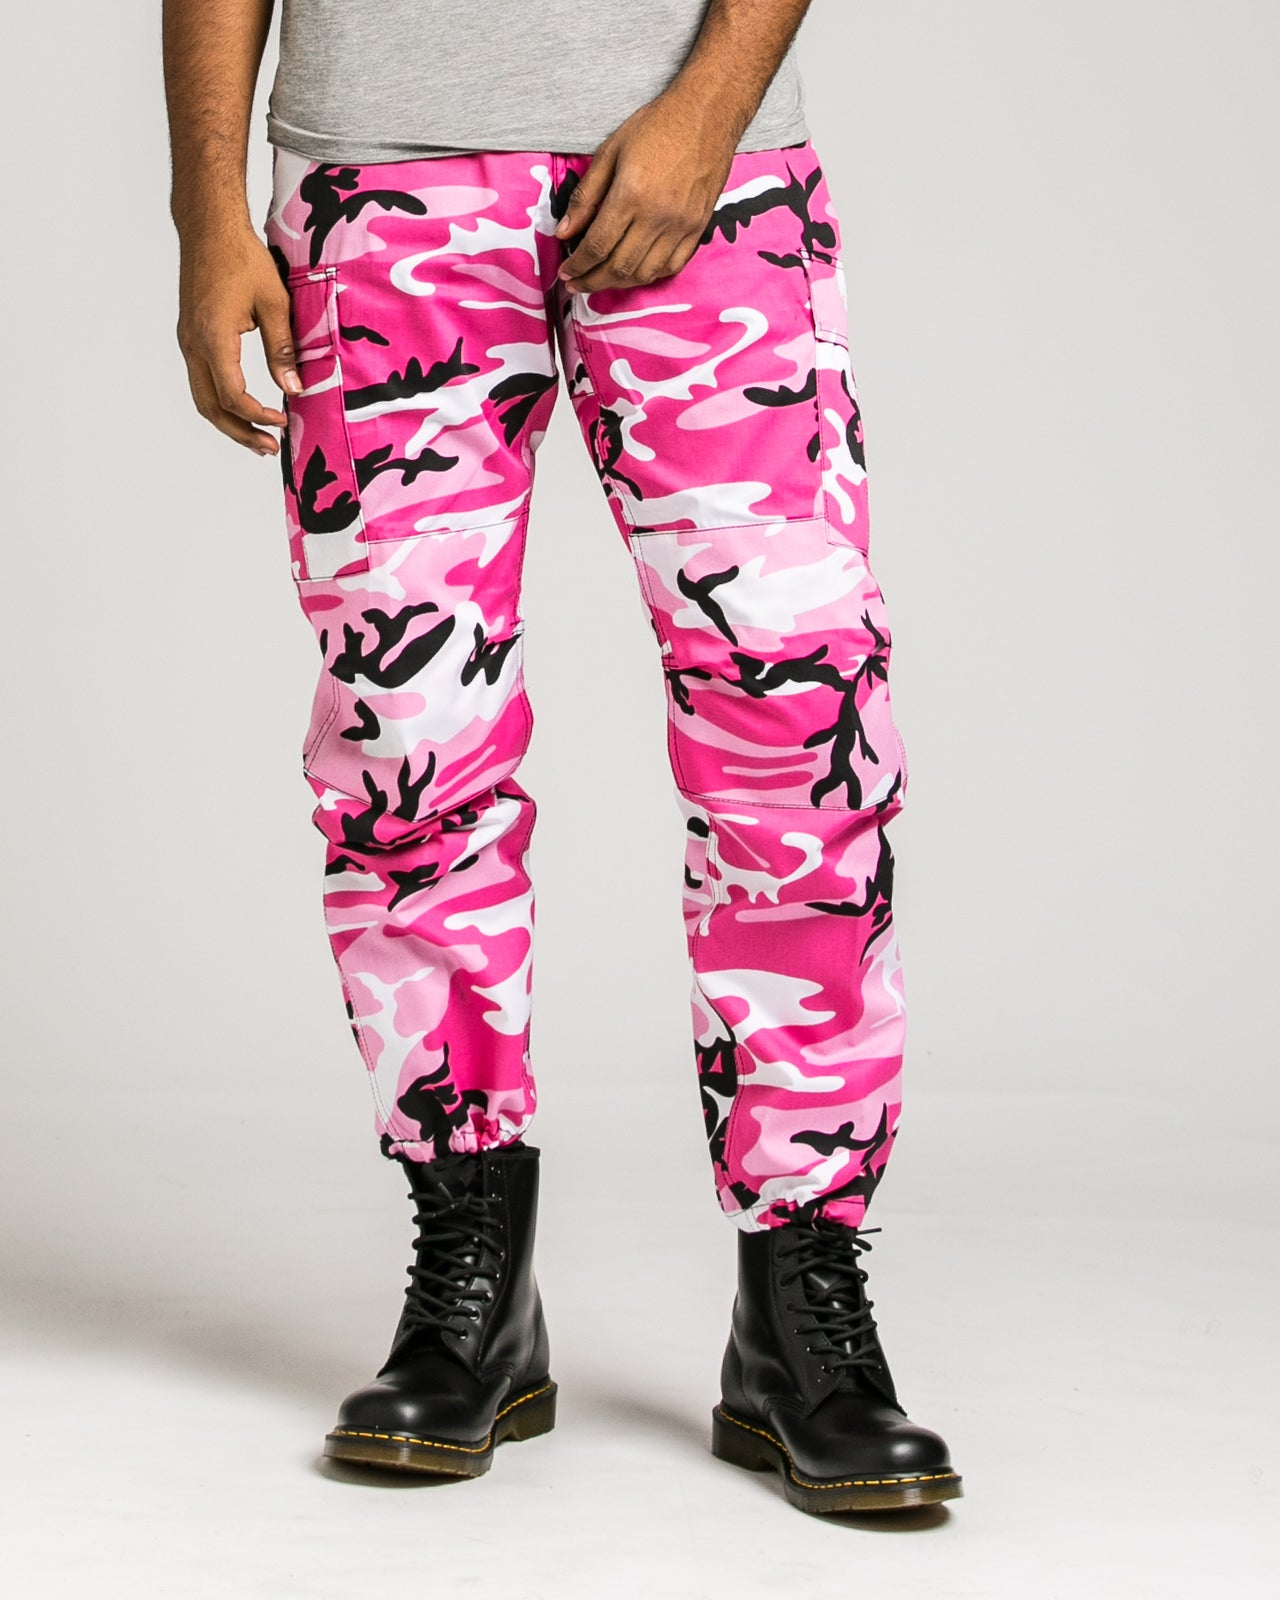 B.D.U. Pants - Color: Pink Camo | Pink